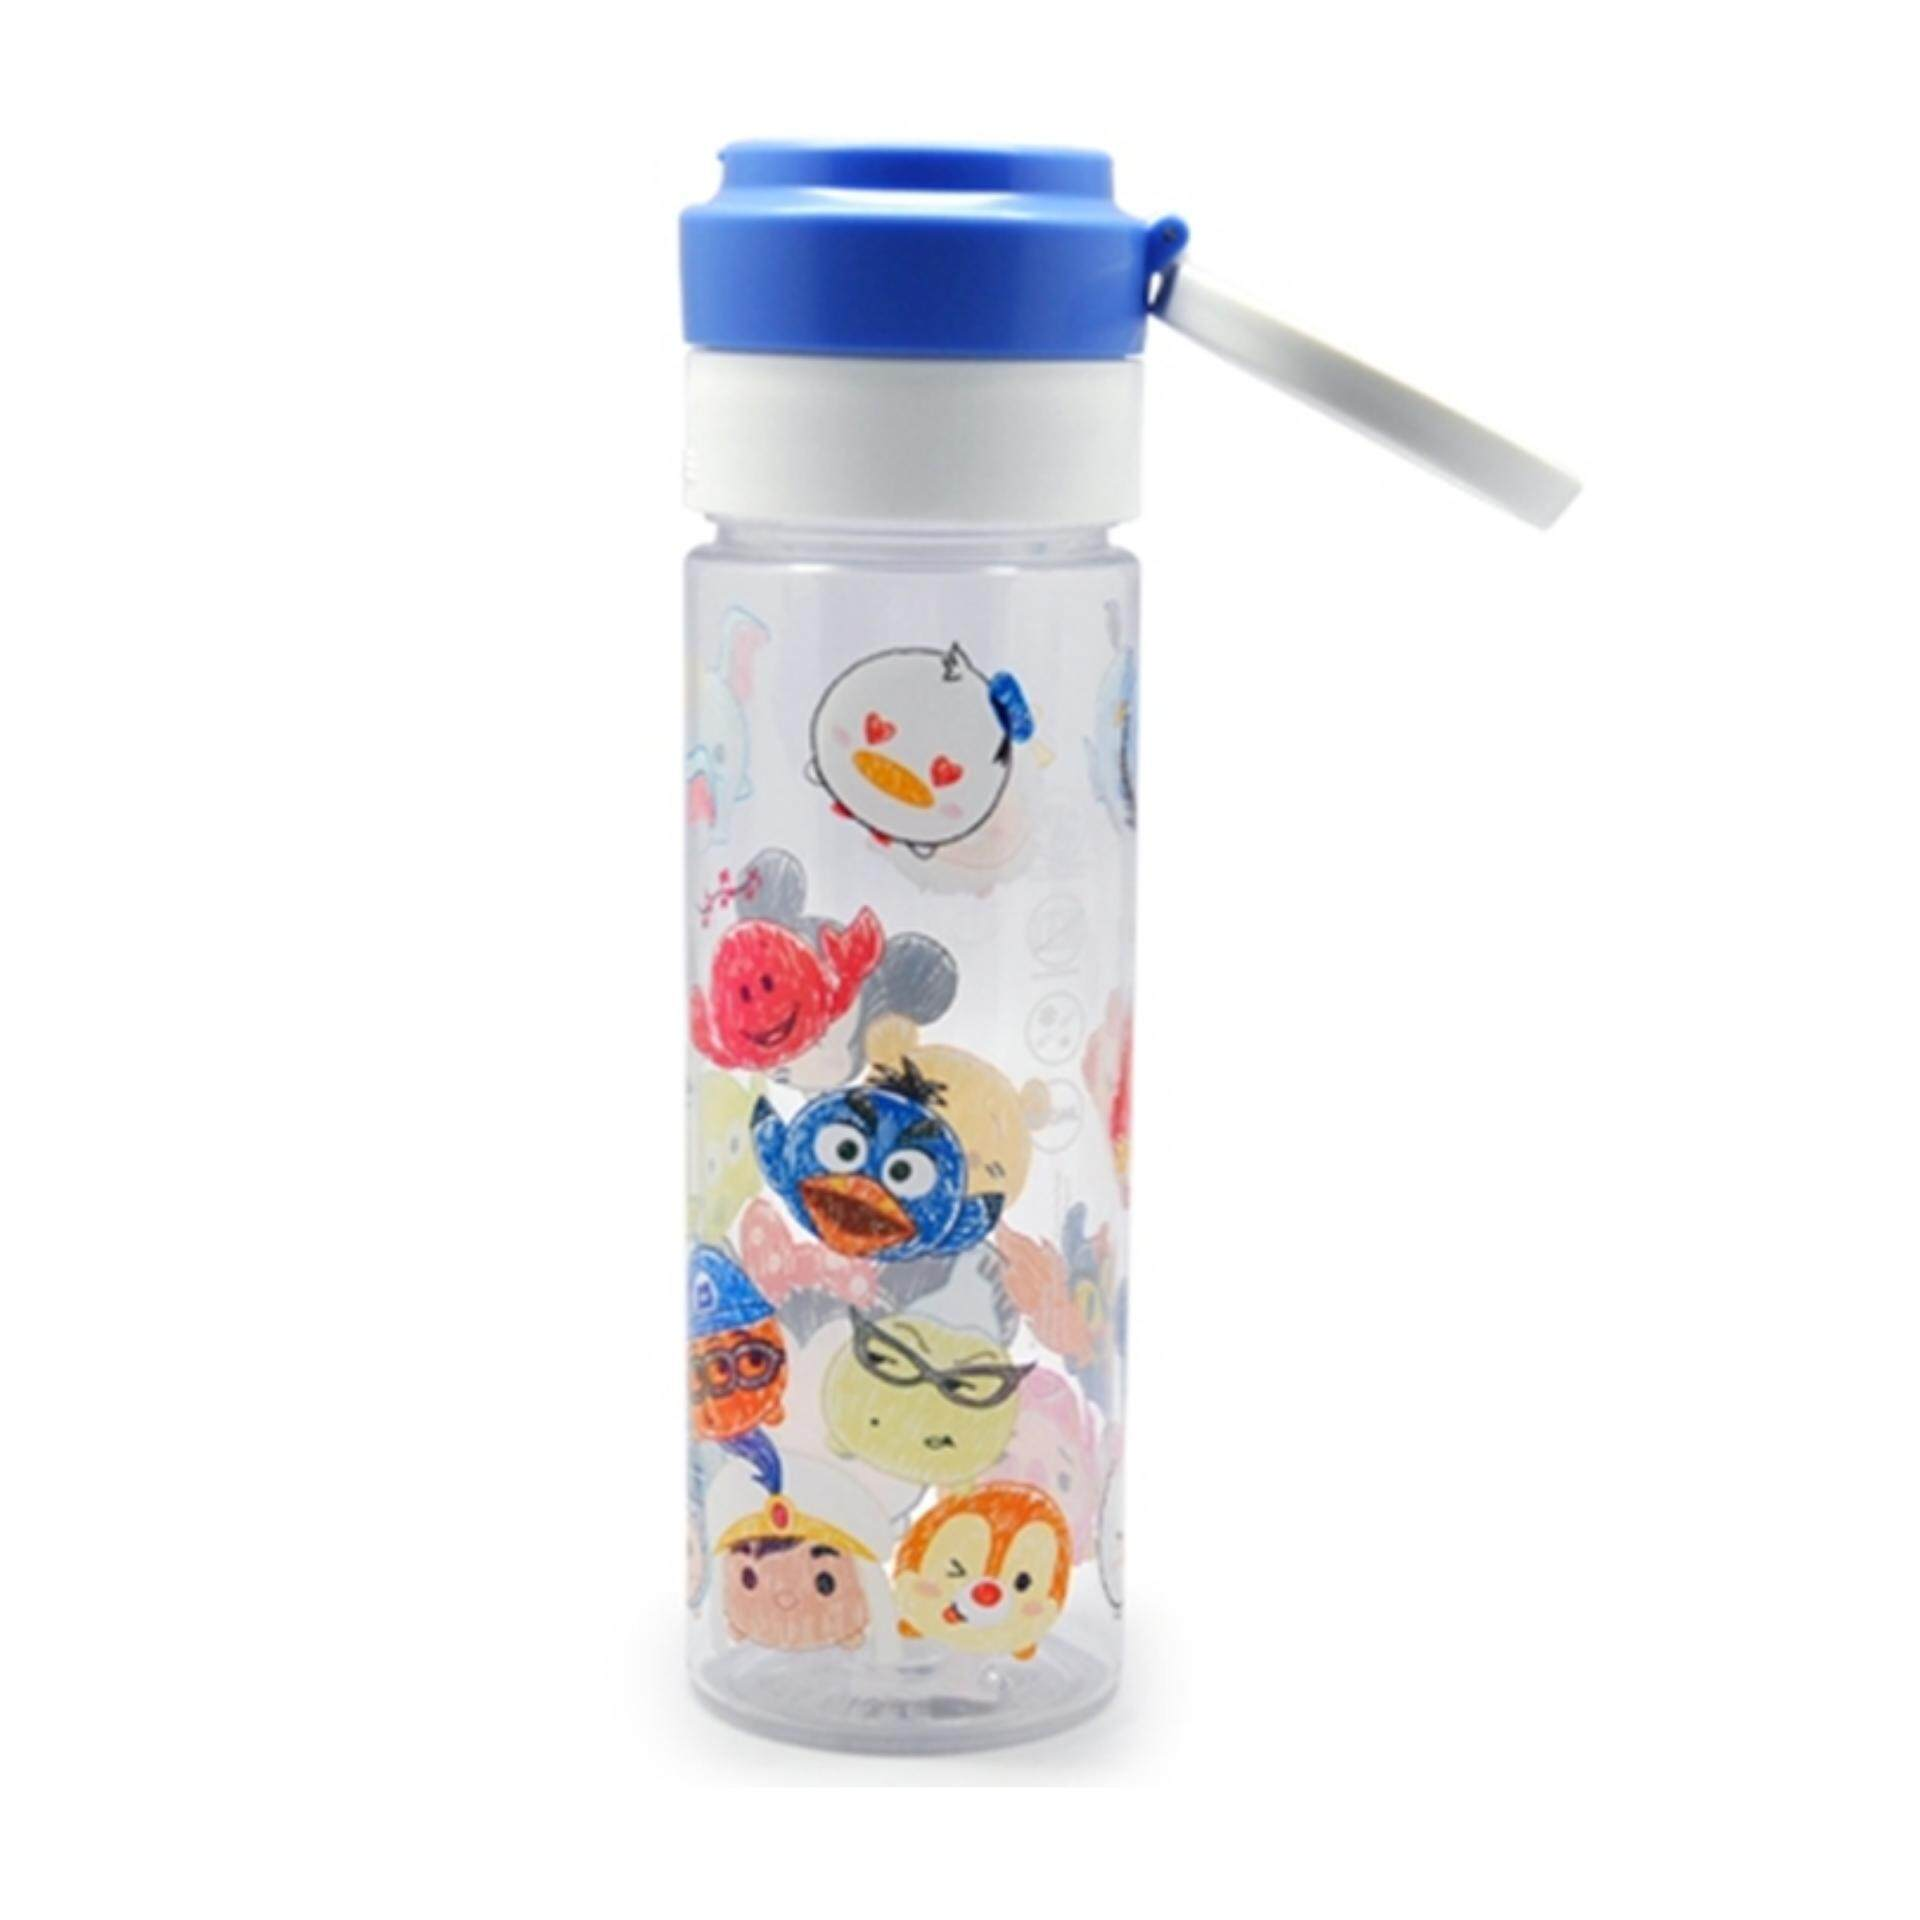 Disney Tsum Tsum 600ML Water Bottle - Blue Colour